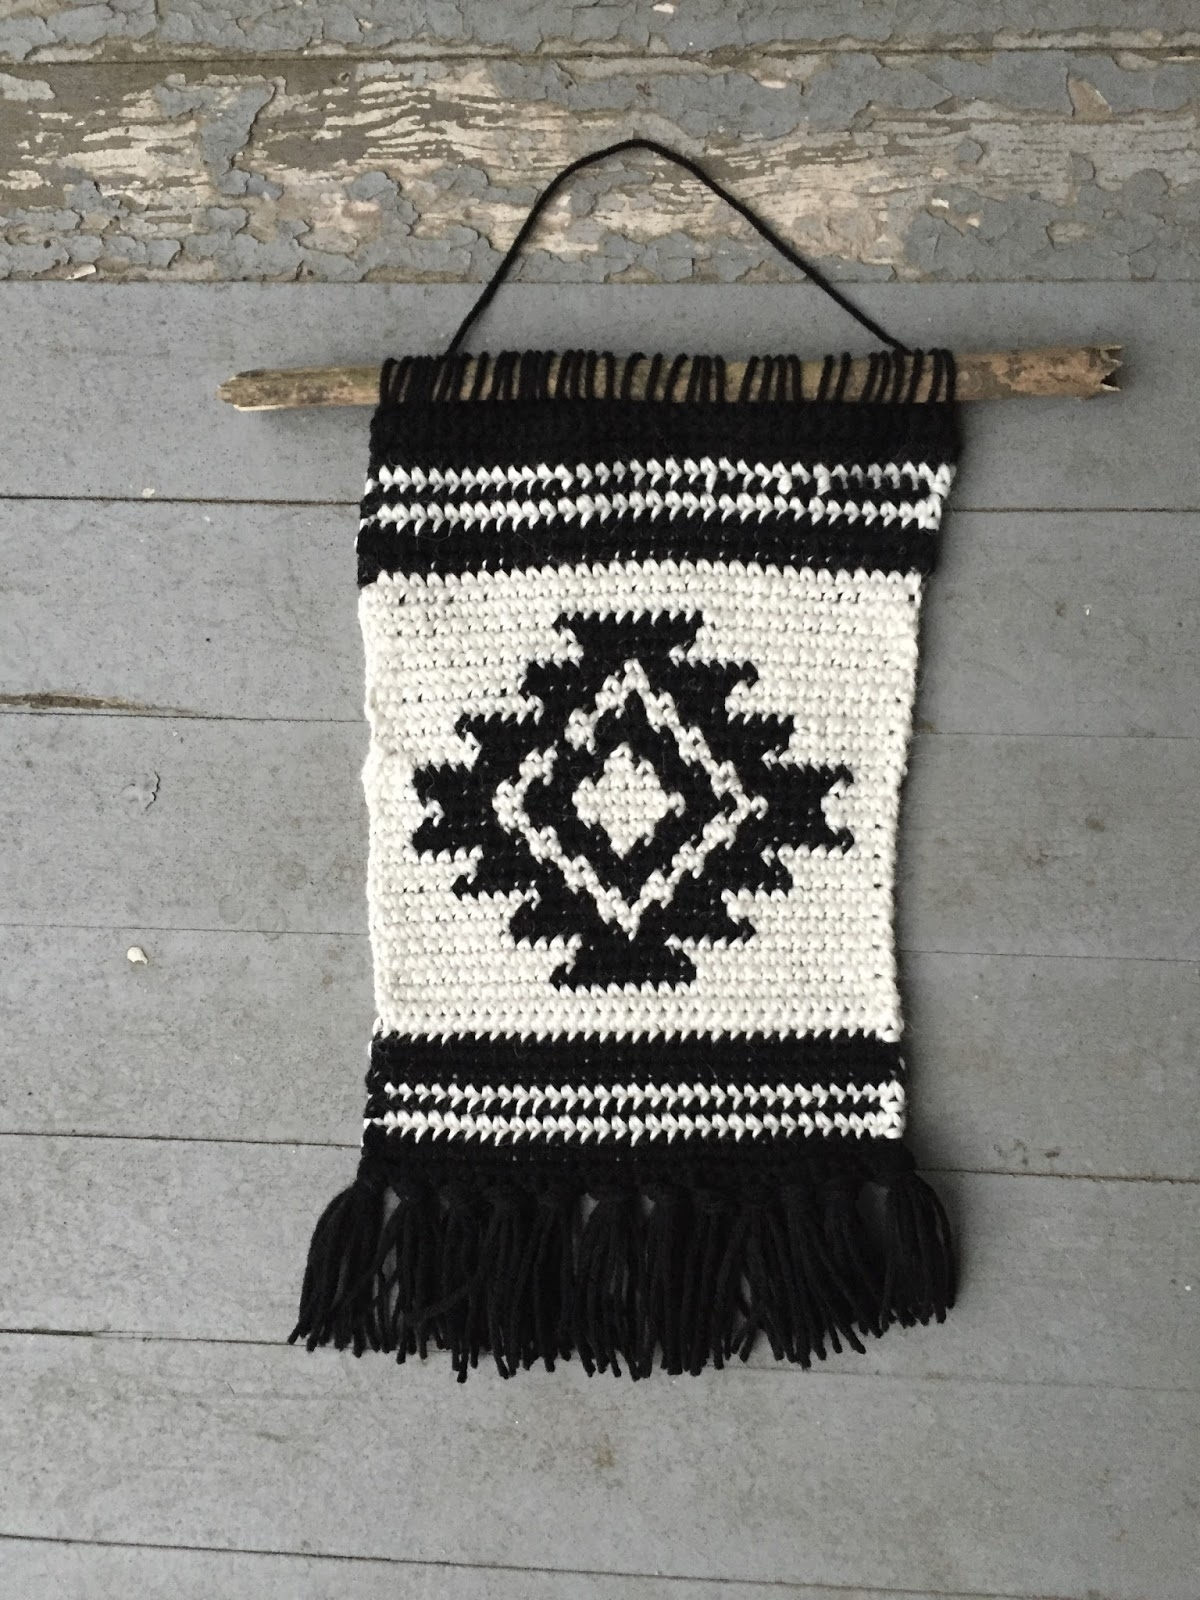 Shirley And Eadie: Crochet Wall Hanging Tutorial Pertaining To 2018 Crochet Wall Art (Gallery 11 of 20)